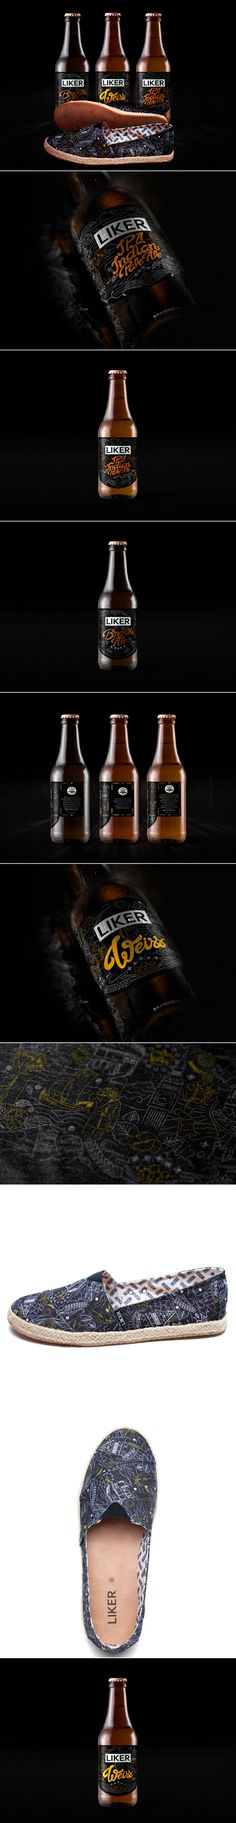 The Illustrated Label of This Beer was Inspired By a Shoe Brand — The Dieline | Packaging & Branding Design & Innovation News